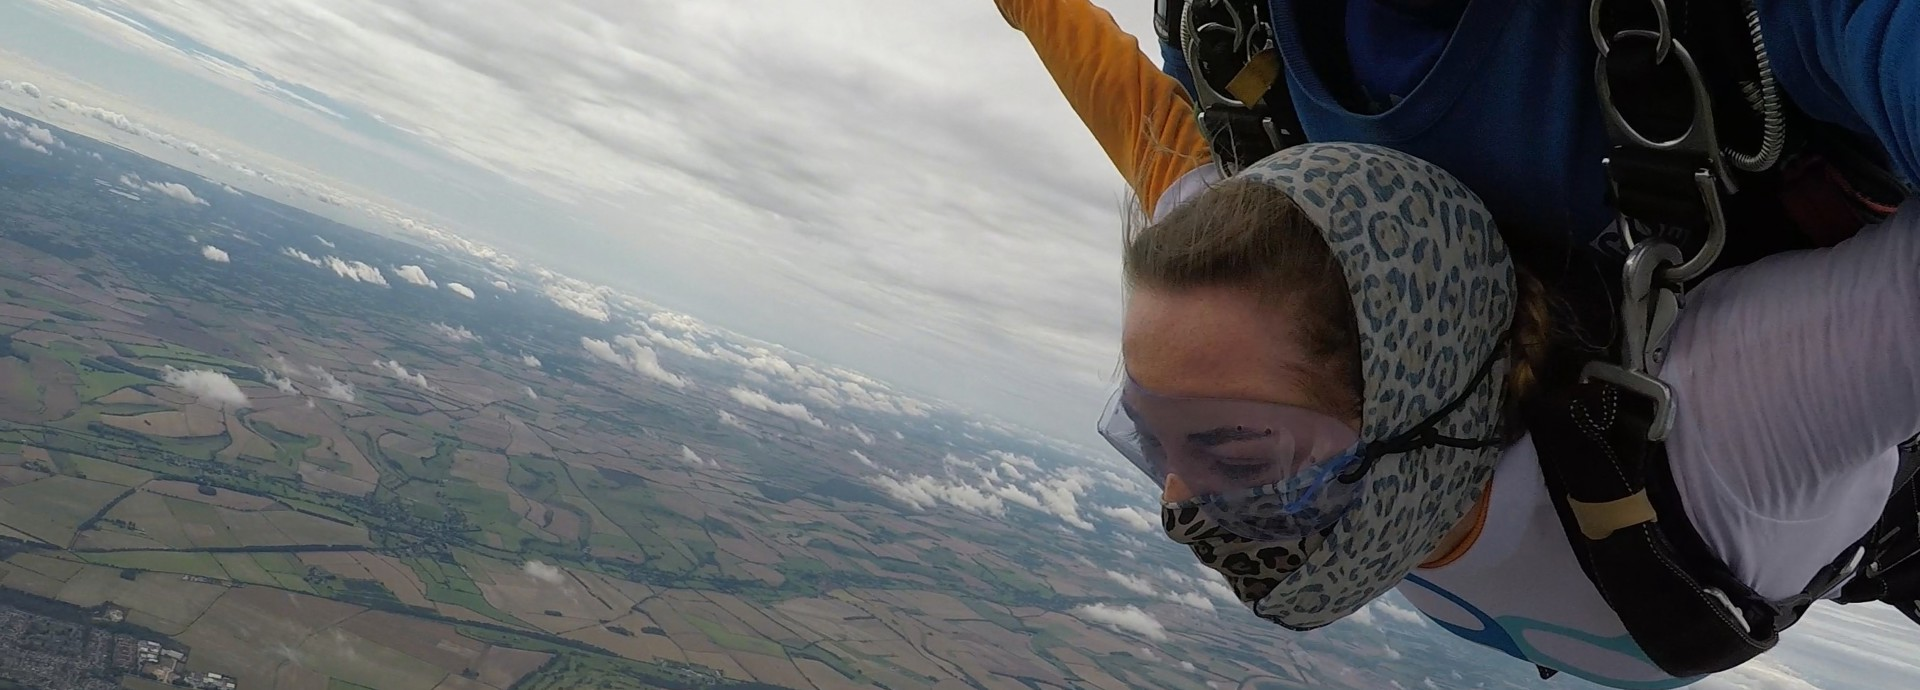 Skydive for dementia!